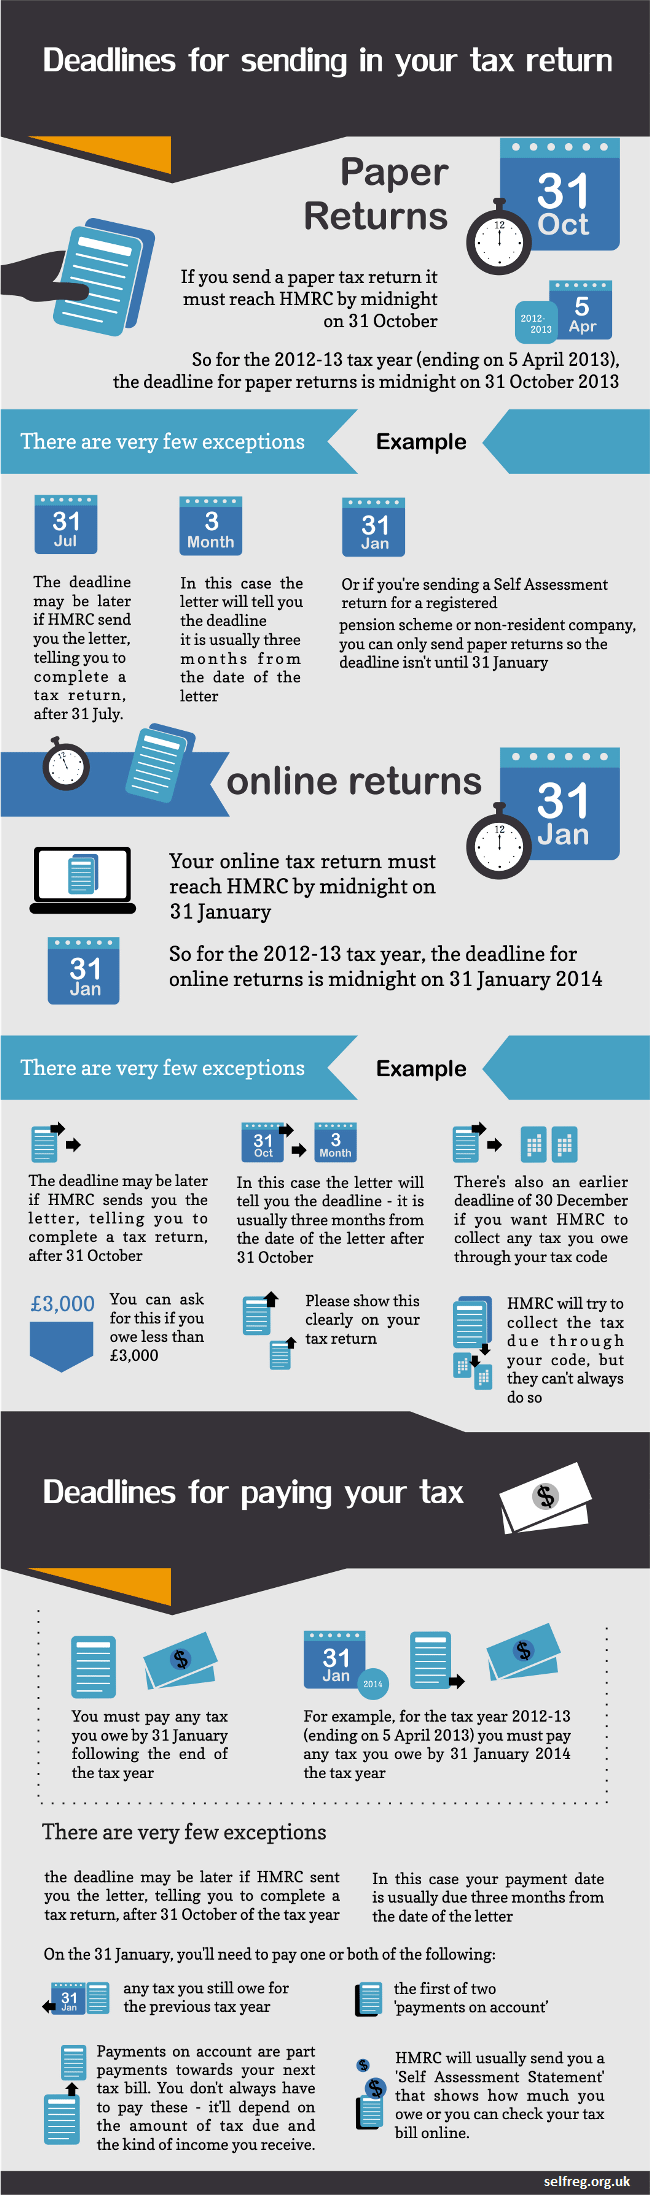 Self Employed Tax Deadlines for 2013